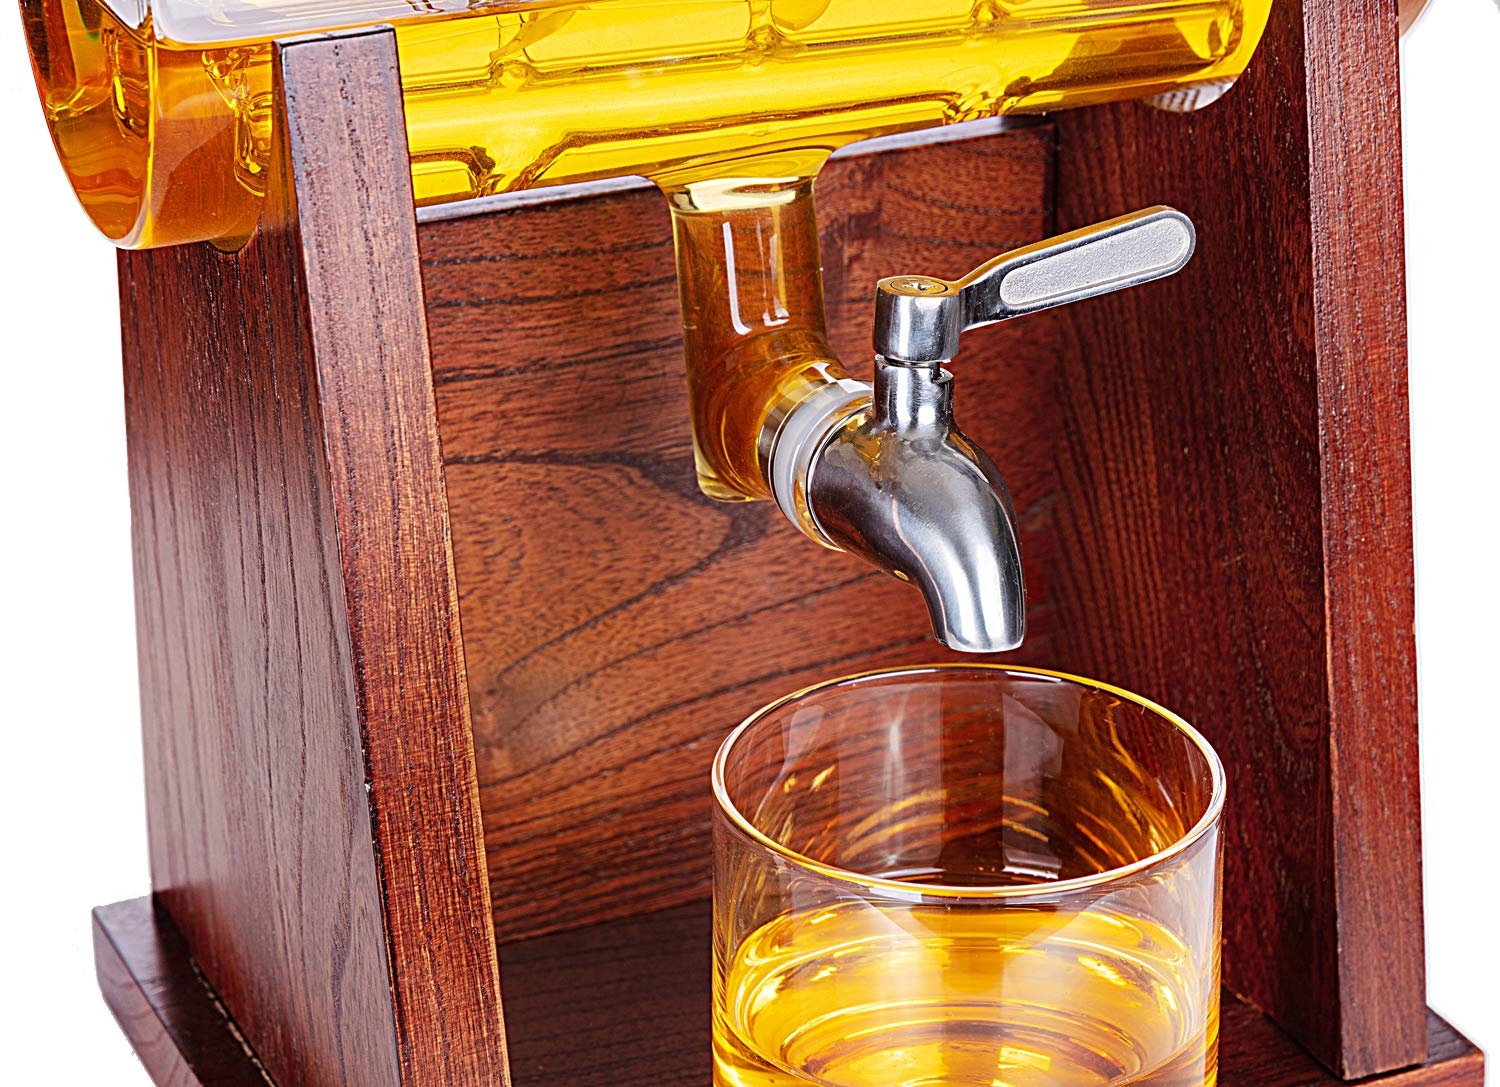 Jillmo Whiskey Decanter Set with 2 Glasses - 1250ml & 42 oz Lead Free Barrel Ship Dispenser with Detachable Wooden Holder Gift for Liquor, Scotch, Bourbon, Vodka, Whisky, Rum & Alcohol by Jillmo (Image #5)